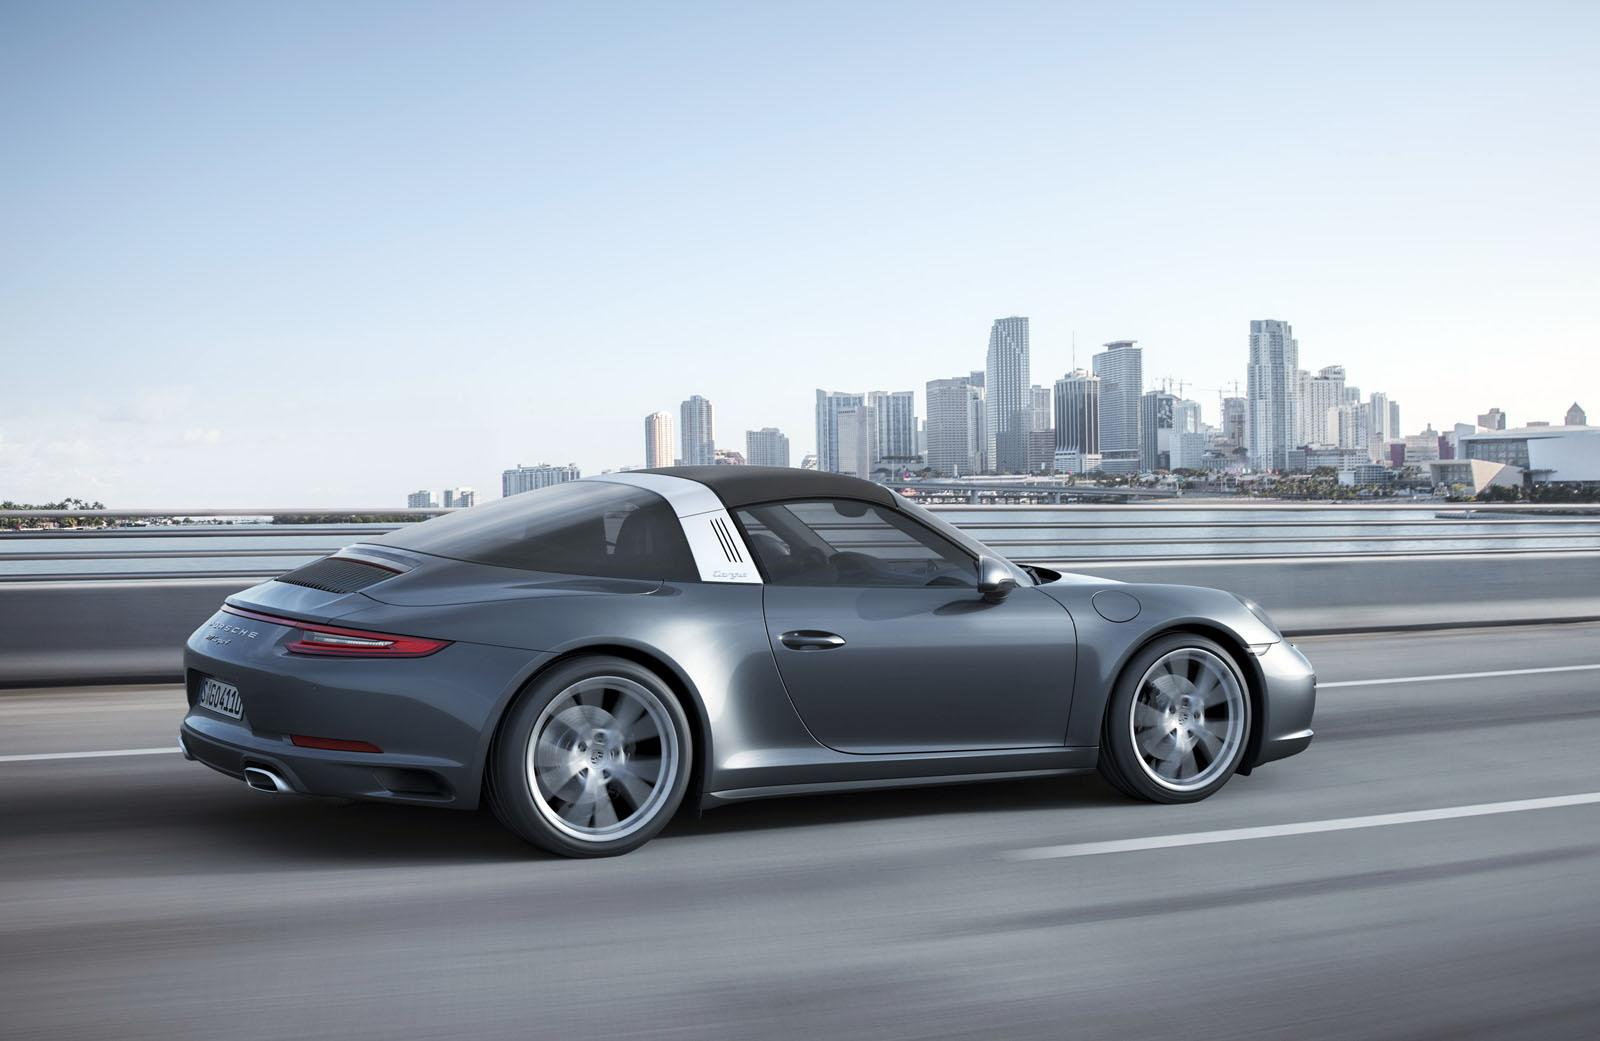 2017 porsche 911 carrera 4 targa 4 receive 911 turbo s smart awd now faster than carrera s. Black Bedroom Furniture Sets. Home Design Ideas